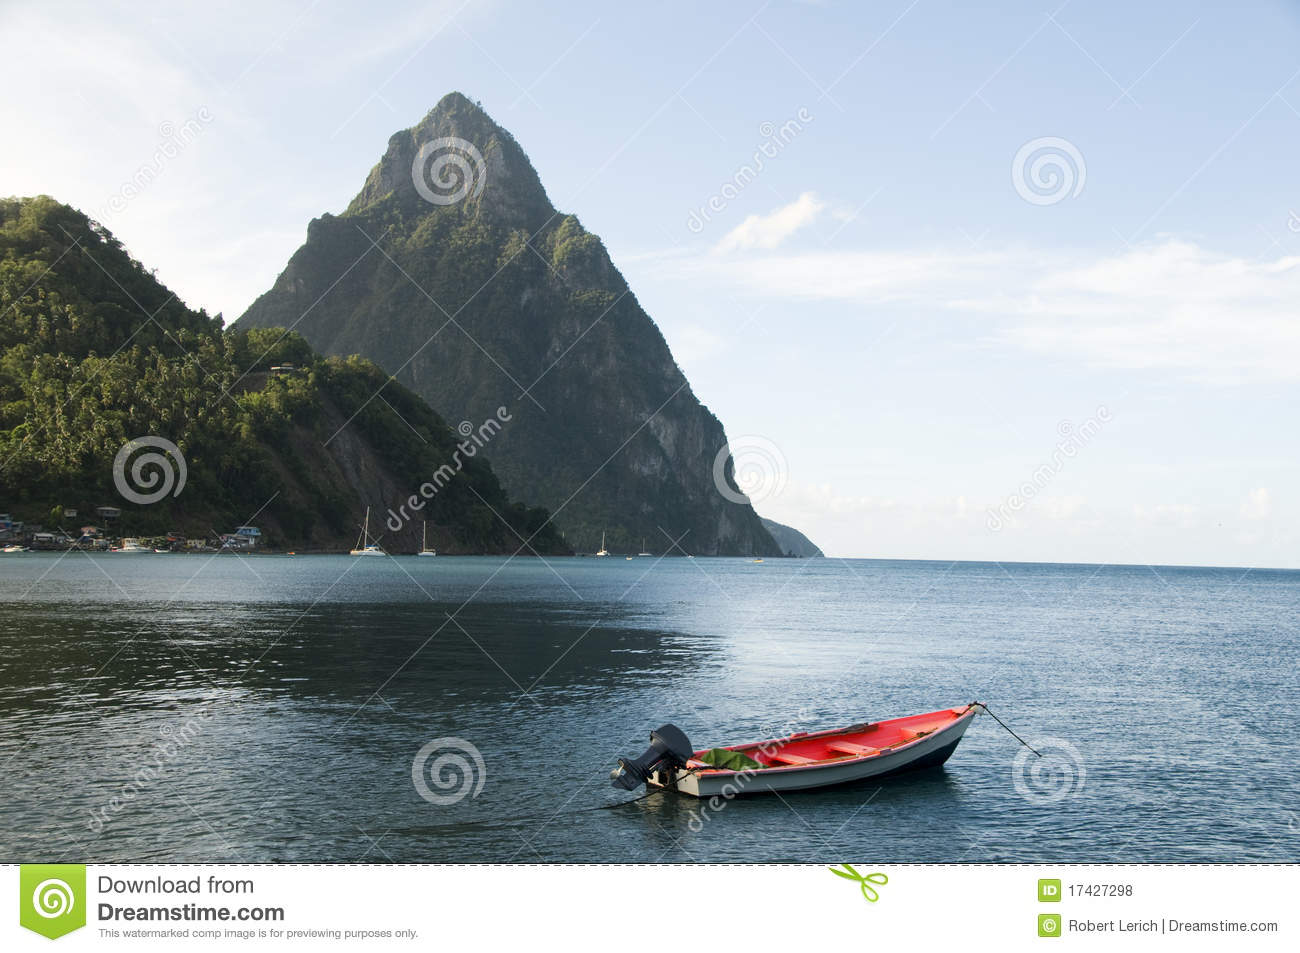 Soufriere St. Lucia Piton Peaks Fishing Boat Royalty Free Stock Photos - Image: 17427298